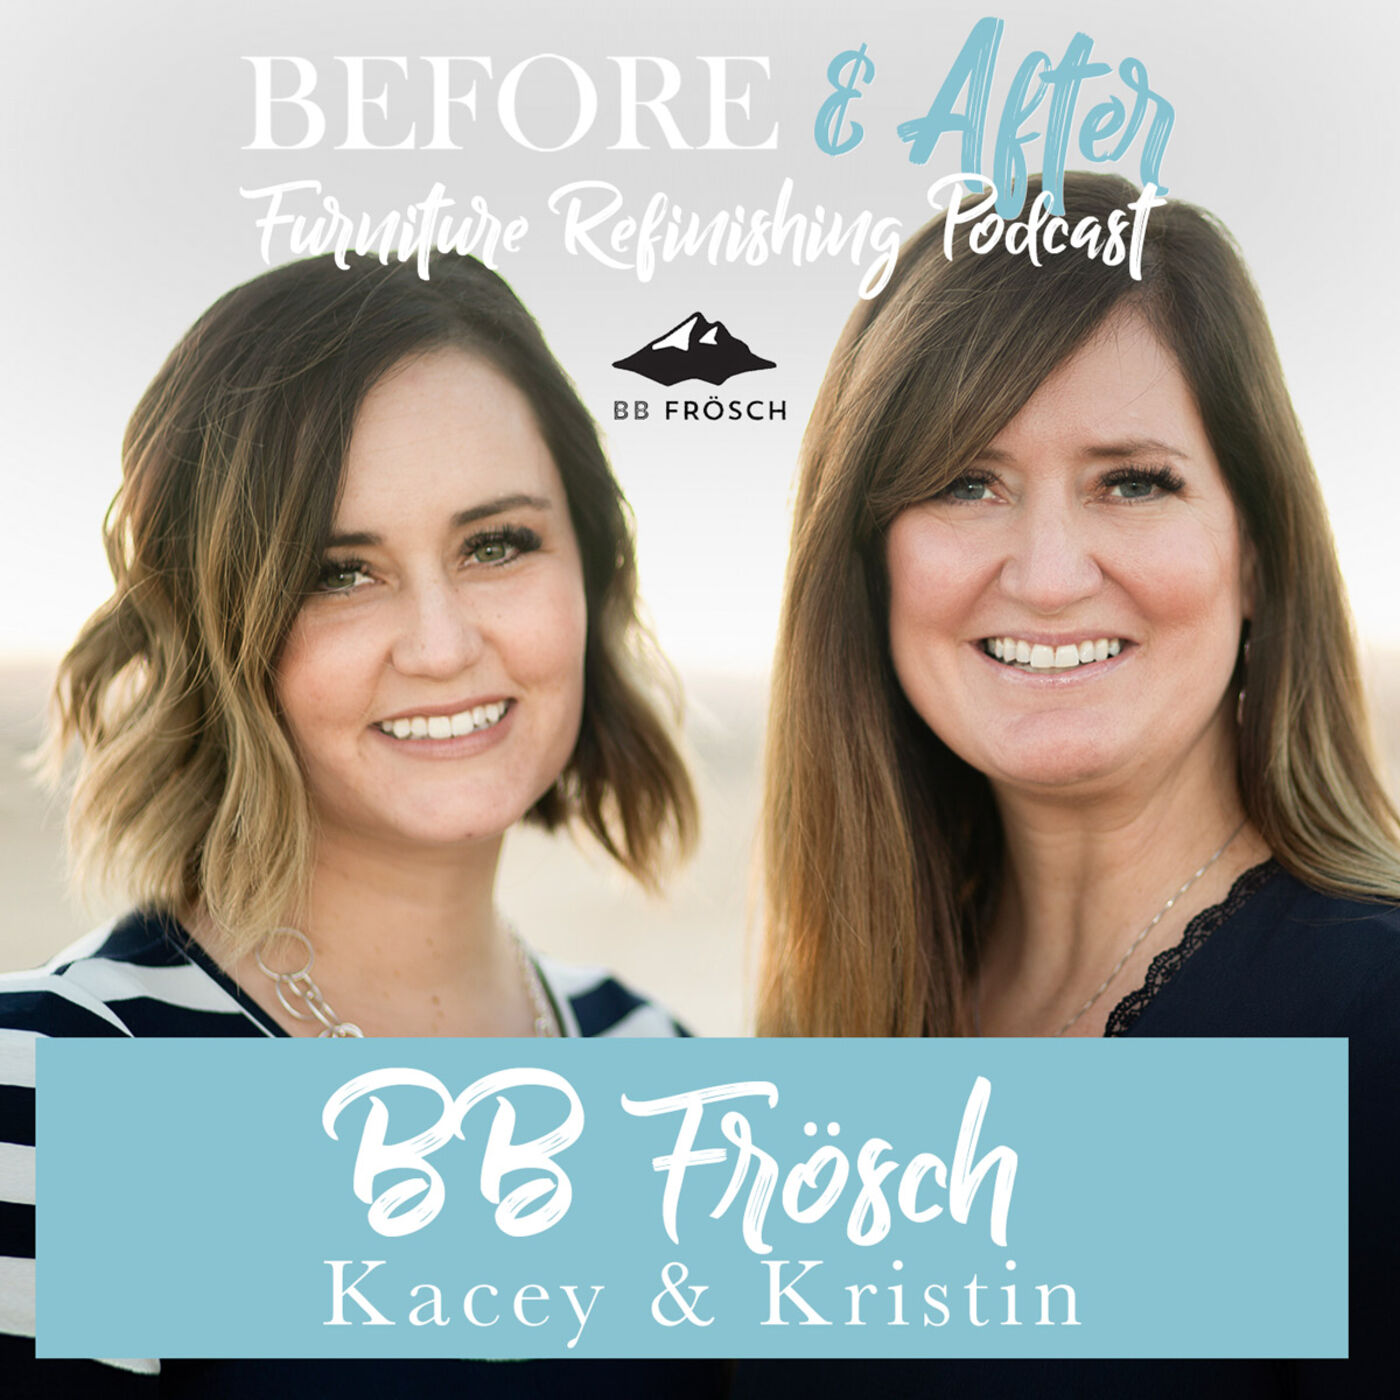 Learn more about BB Frösch with Mother and Daughter owners, Kristin Smith and Kacey Stout.